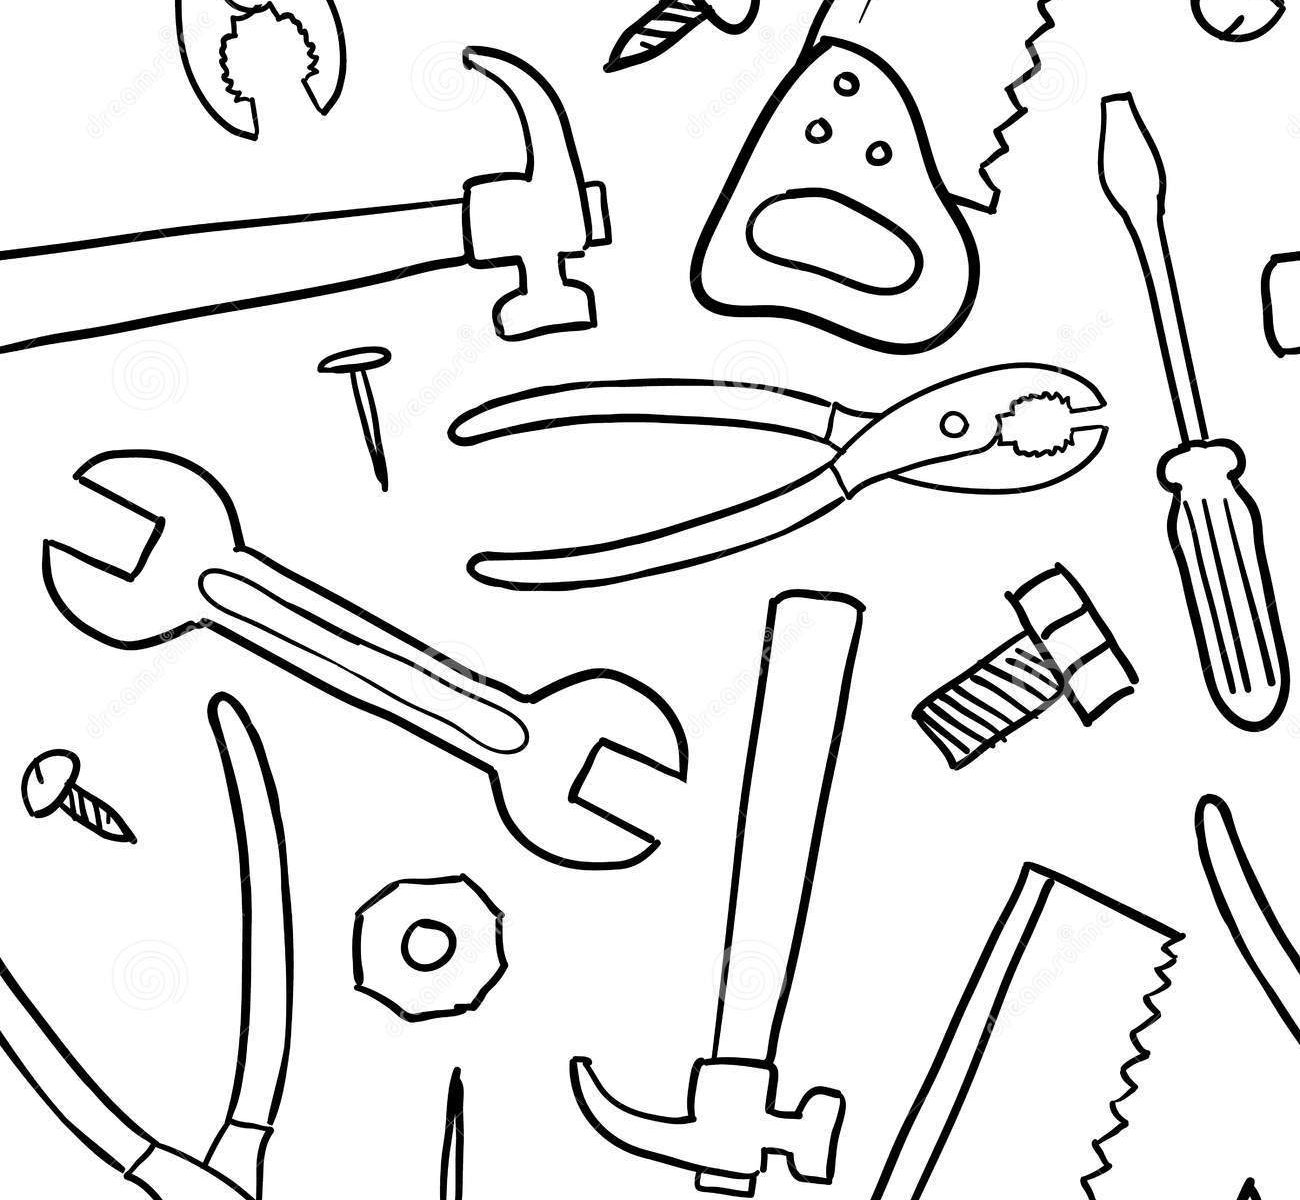 wrench coloring page - construction tools drawing at free for